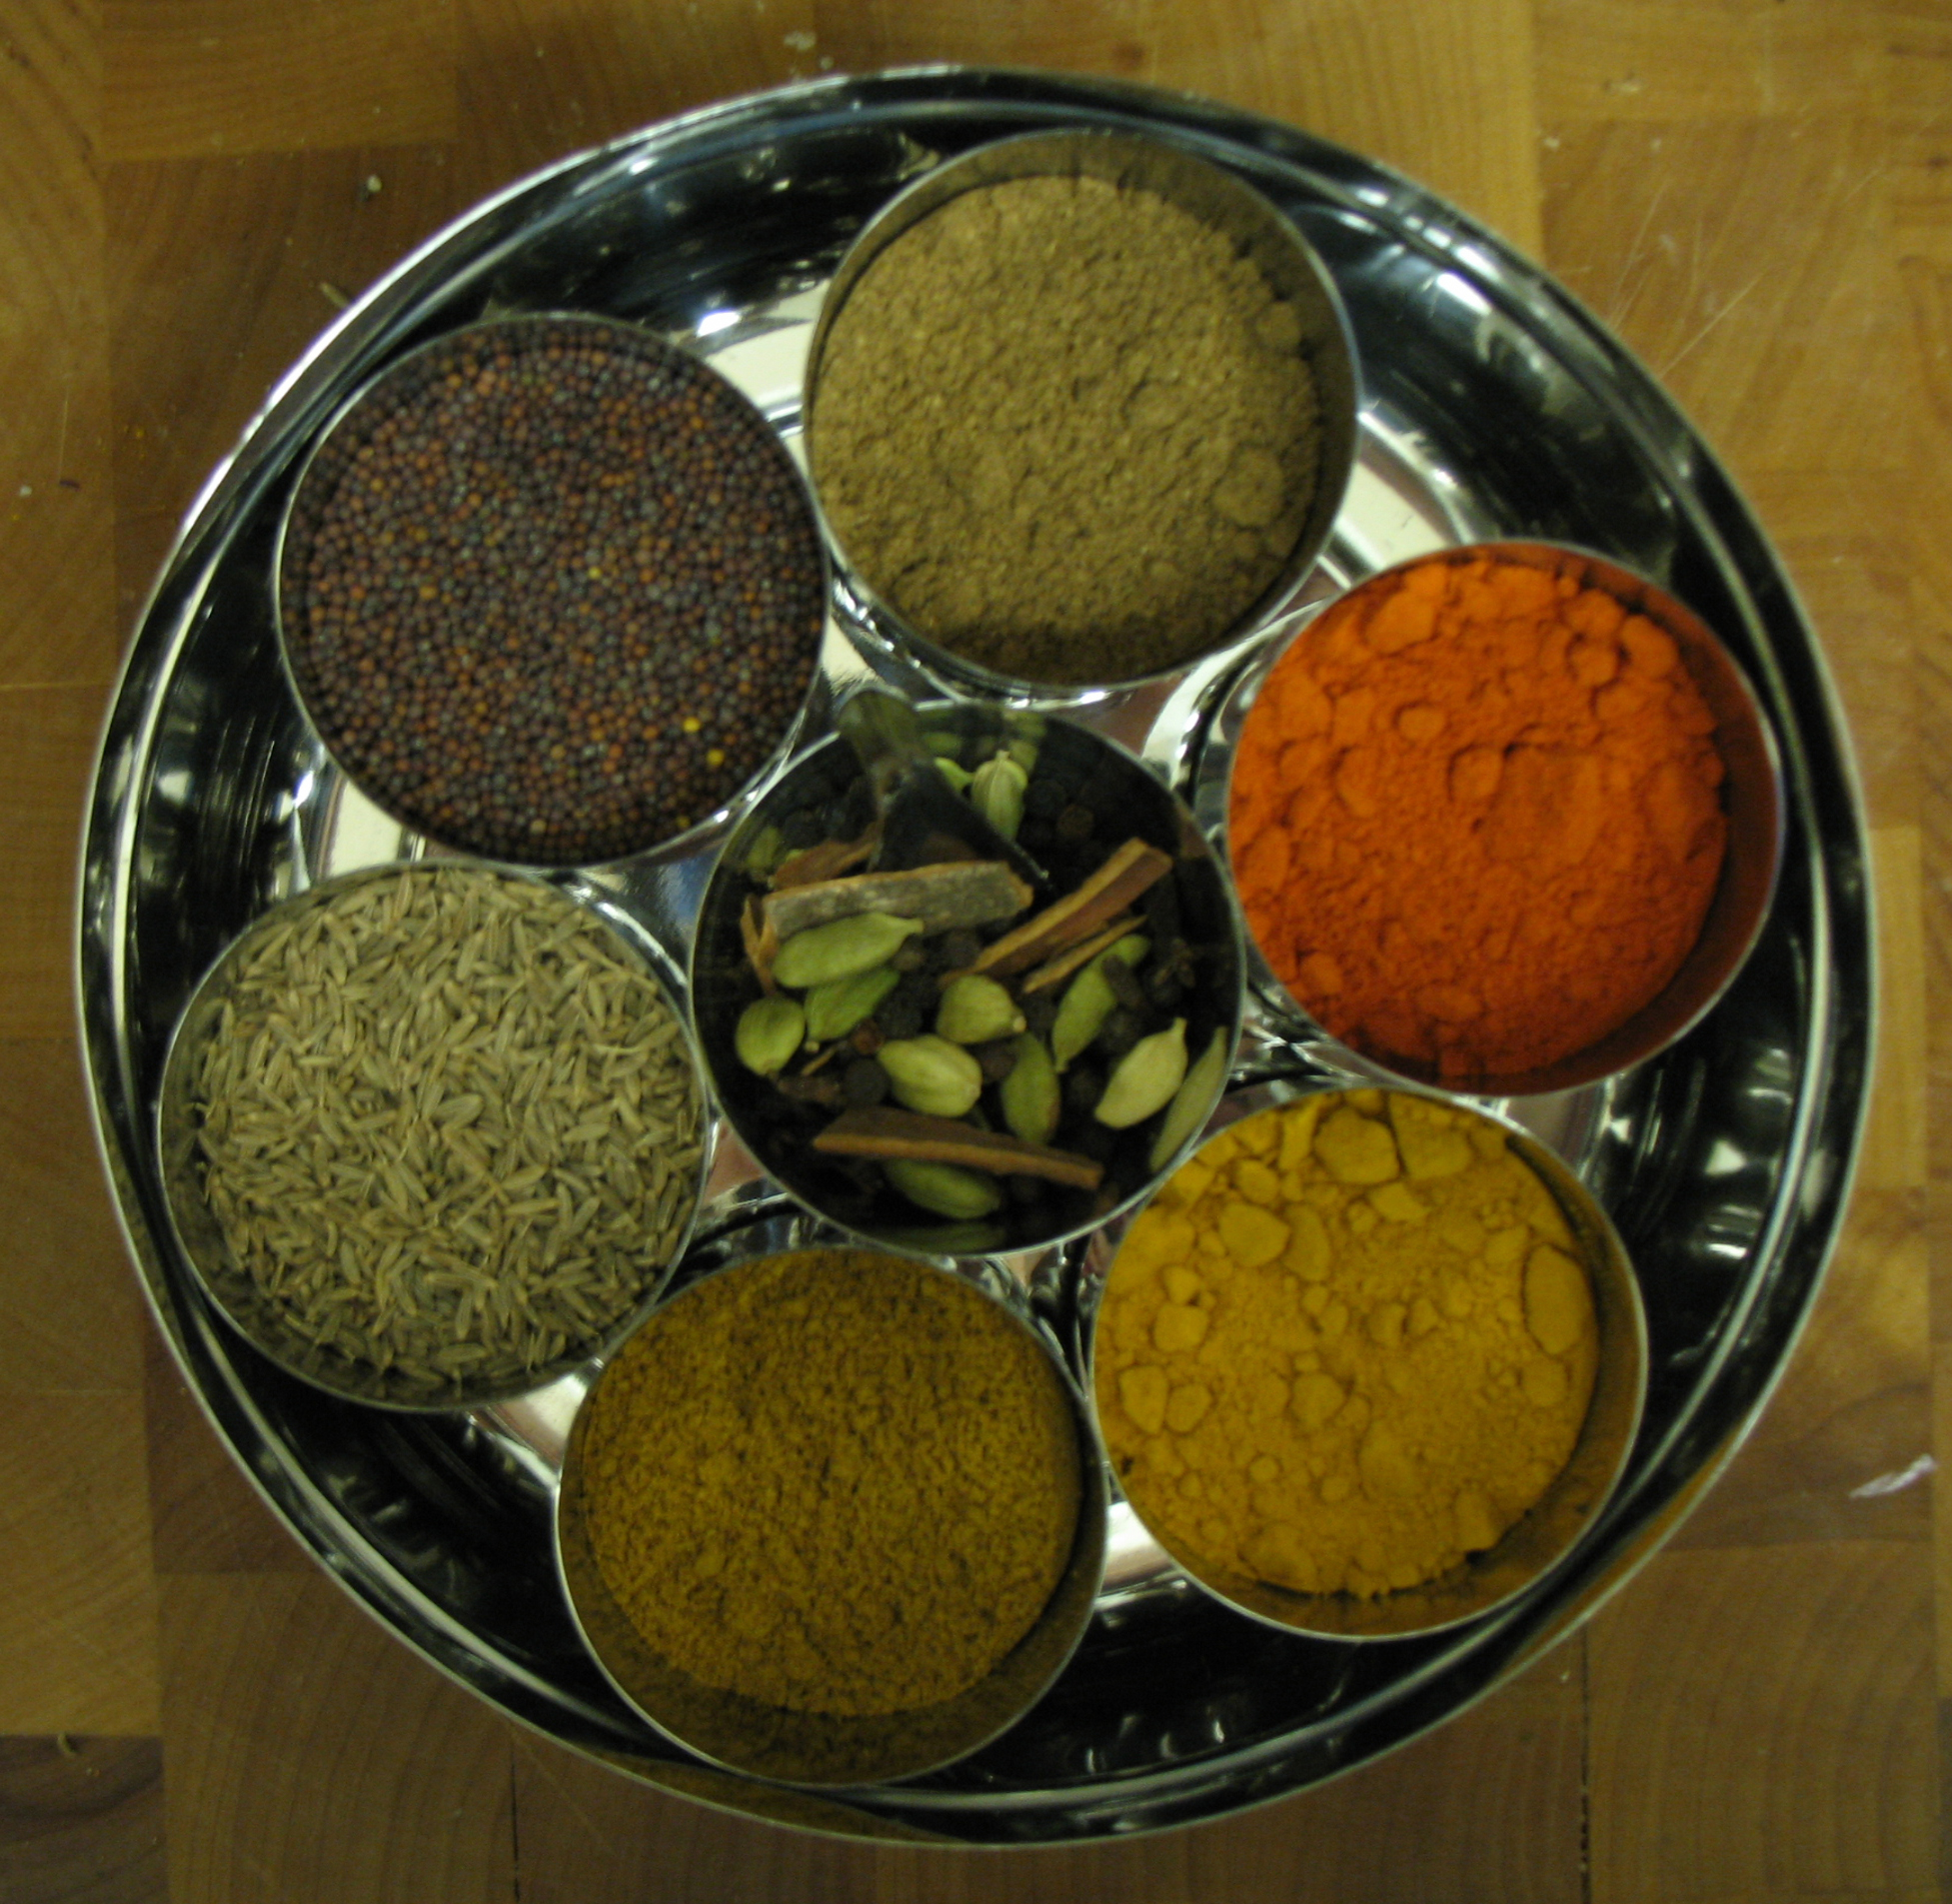 Herbs and Spices in containers